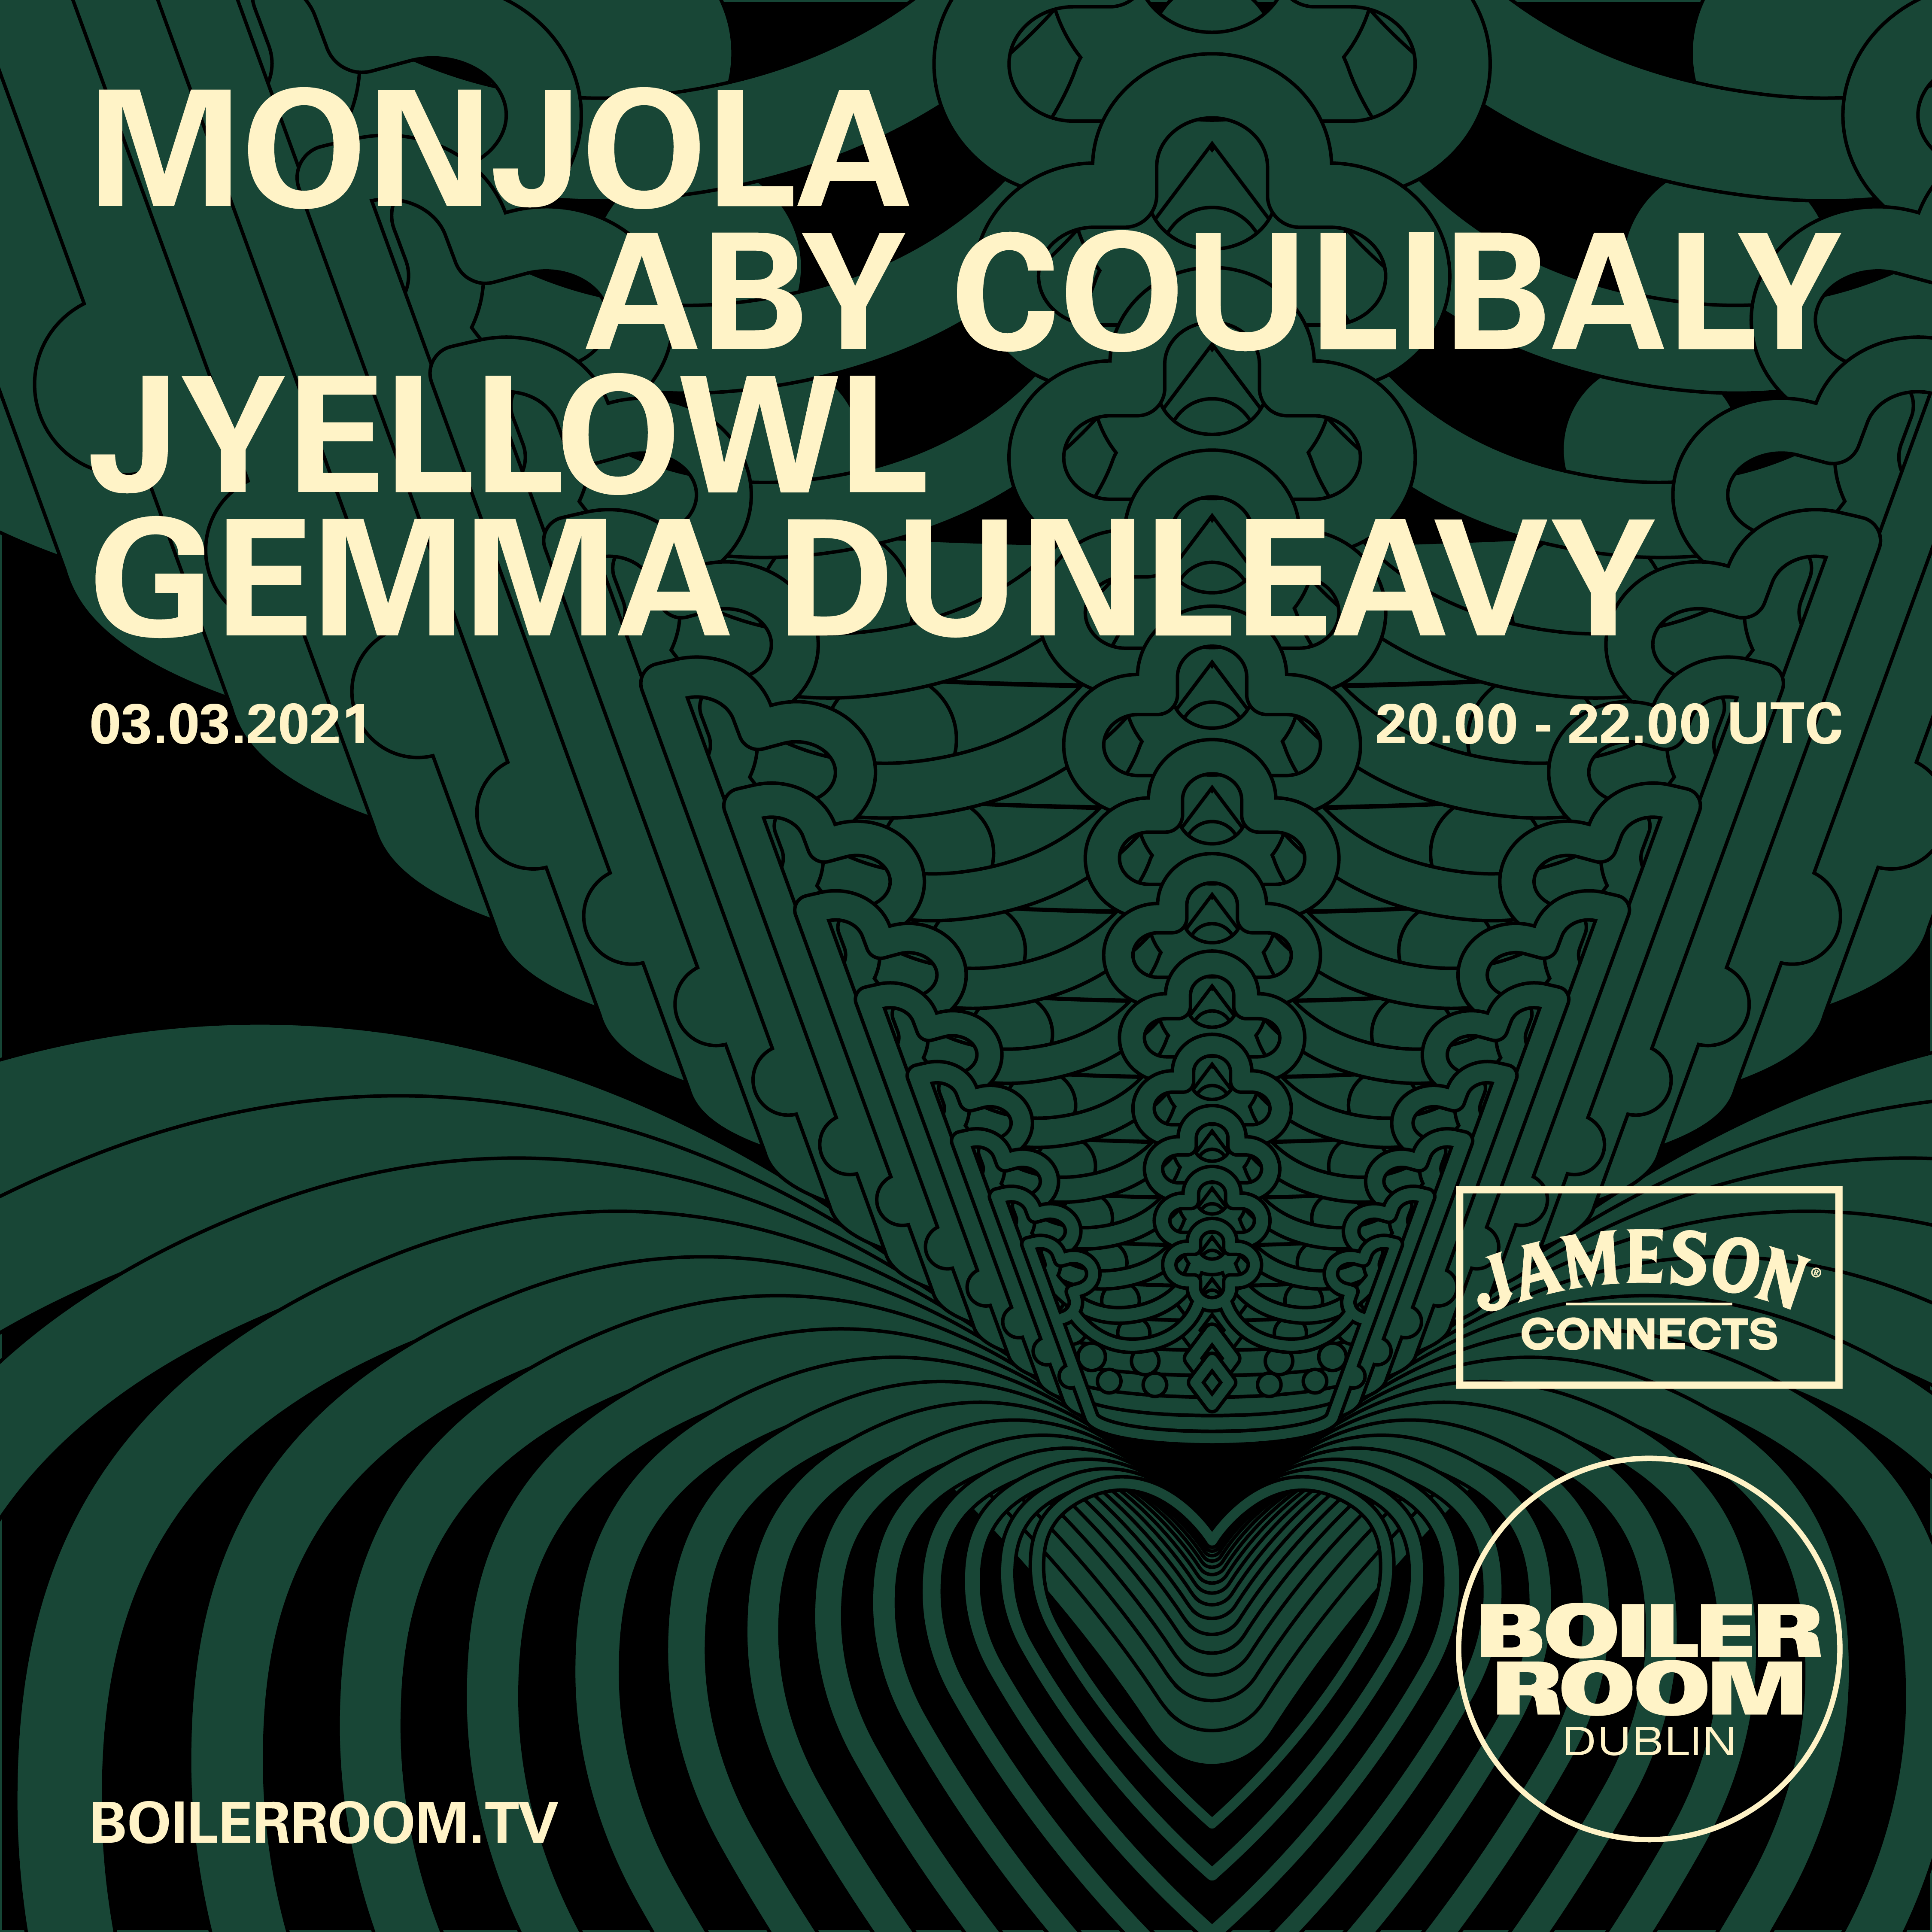 GEMMA DUNLEAVY, JYELLOWL, MONJOLA & ABY COULIBALY WITH JAMESON CONNECTS Flyer Image